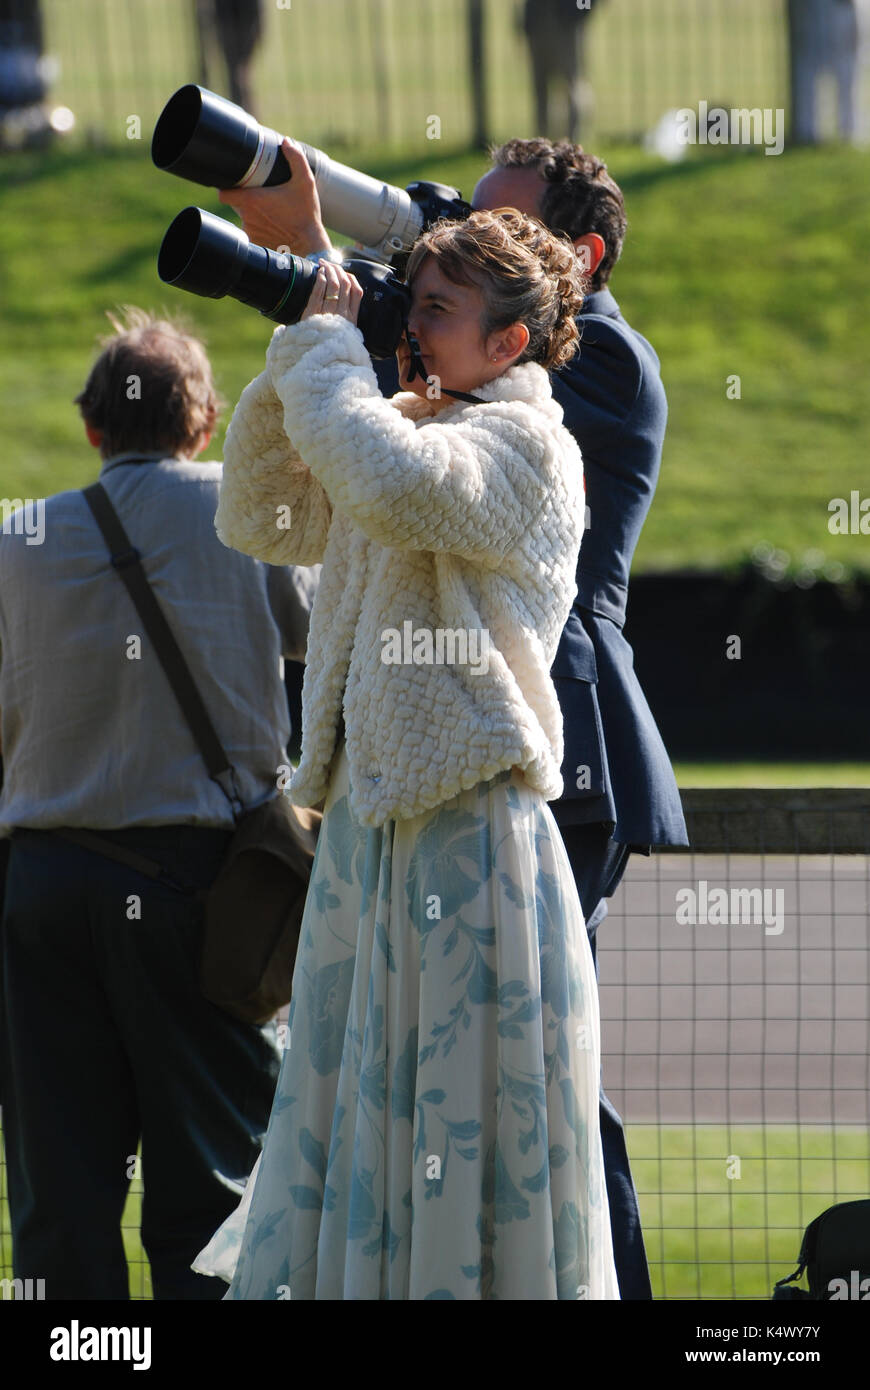 Two Photographers in Period Dress Photographing Vintage Aircraft at Goodwood revival - Stock Image